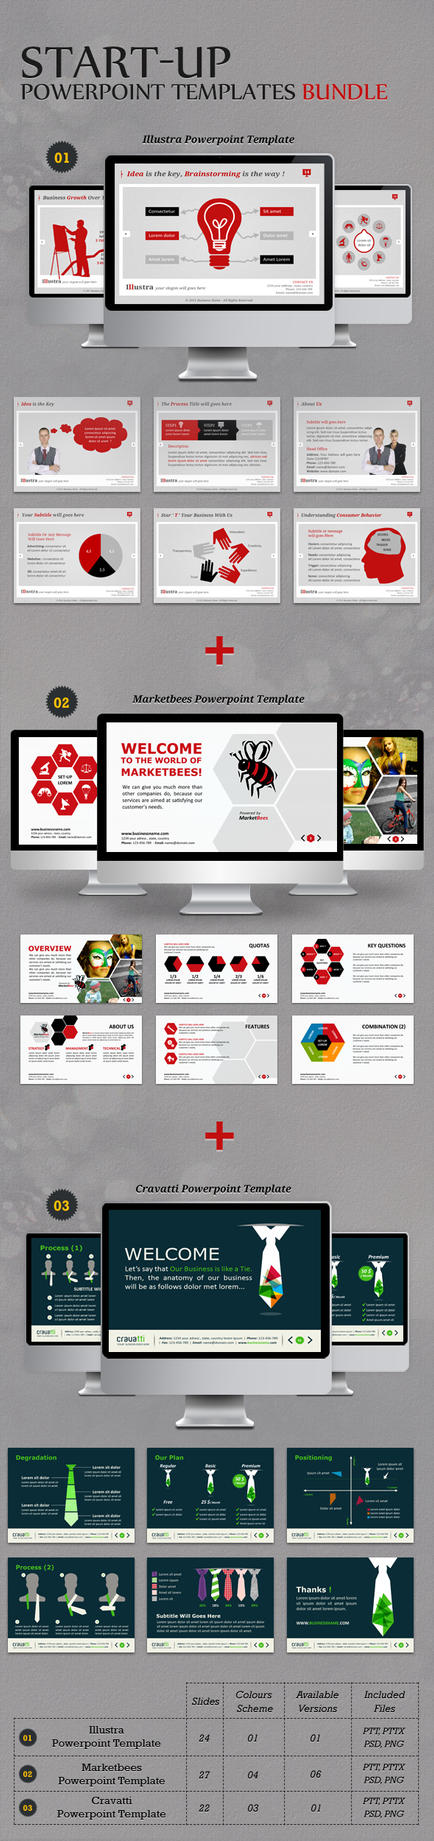 Full templates on powerpointpros deviantart kh2838 9 4 start up powerpoint templates bundle by kh2838 toneelgroepblik Image collections